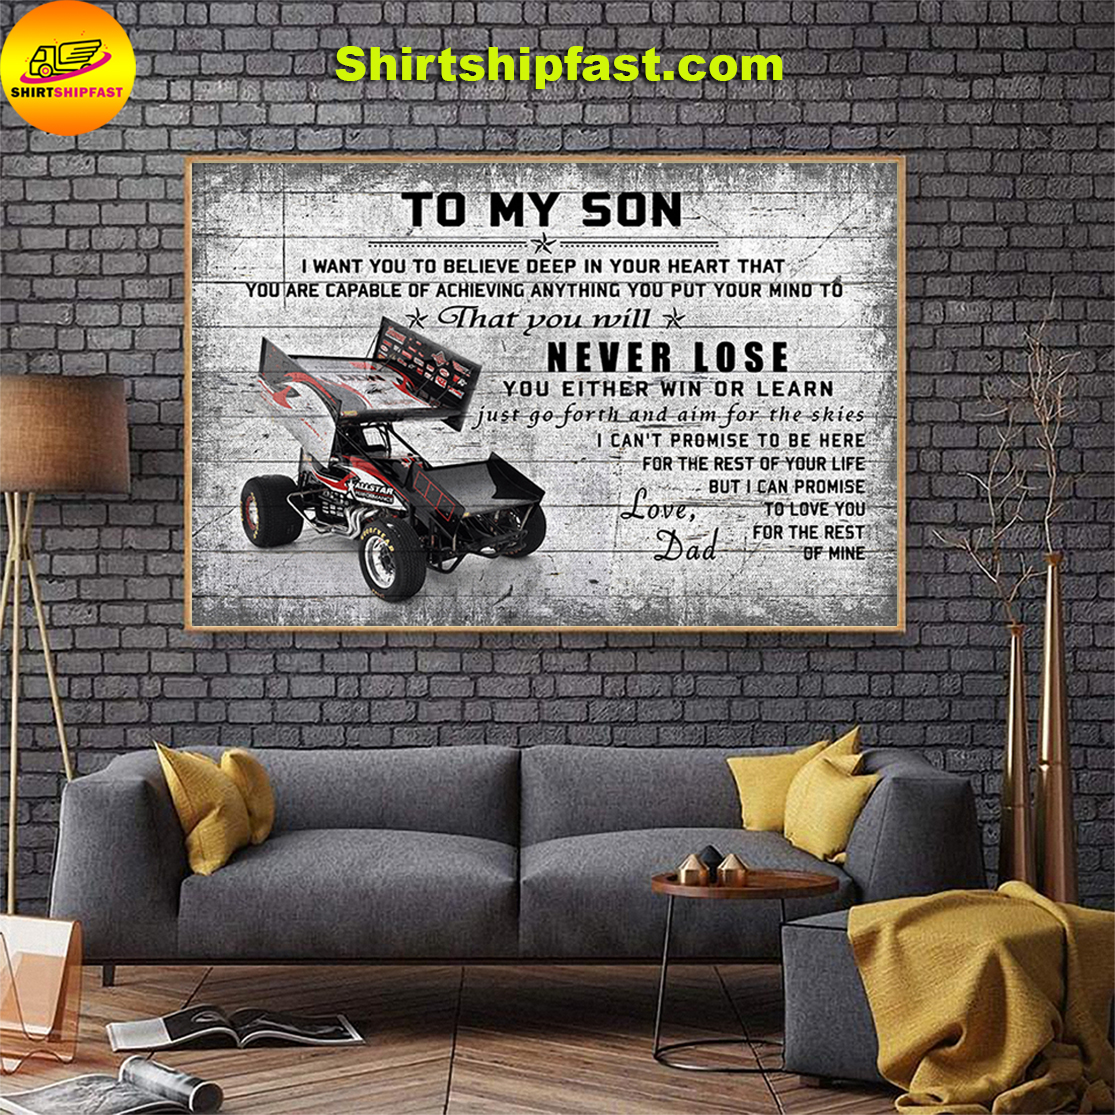 Sprint car To my son love dad canvas - Picture 3